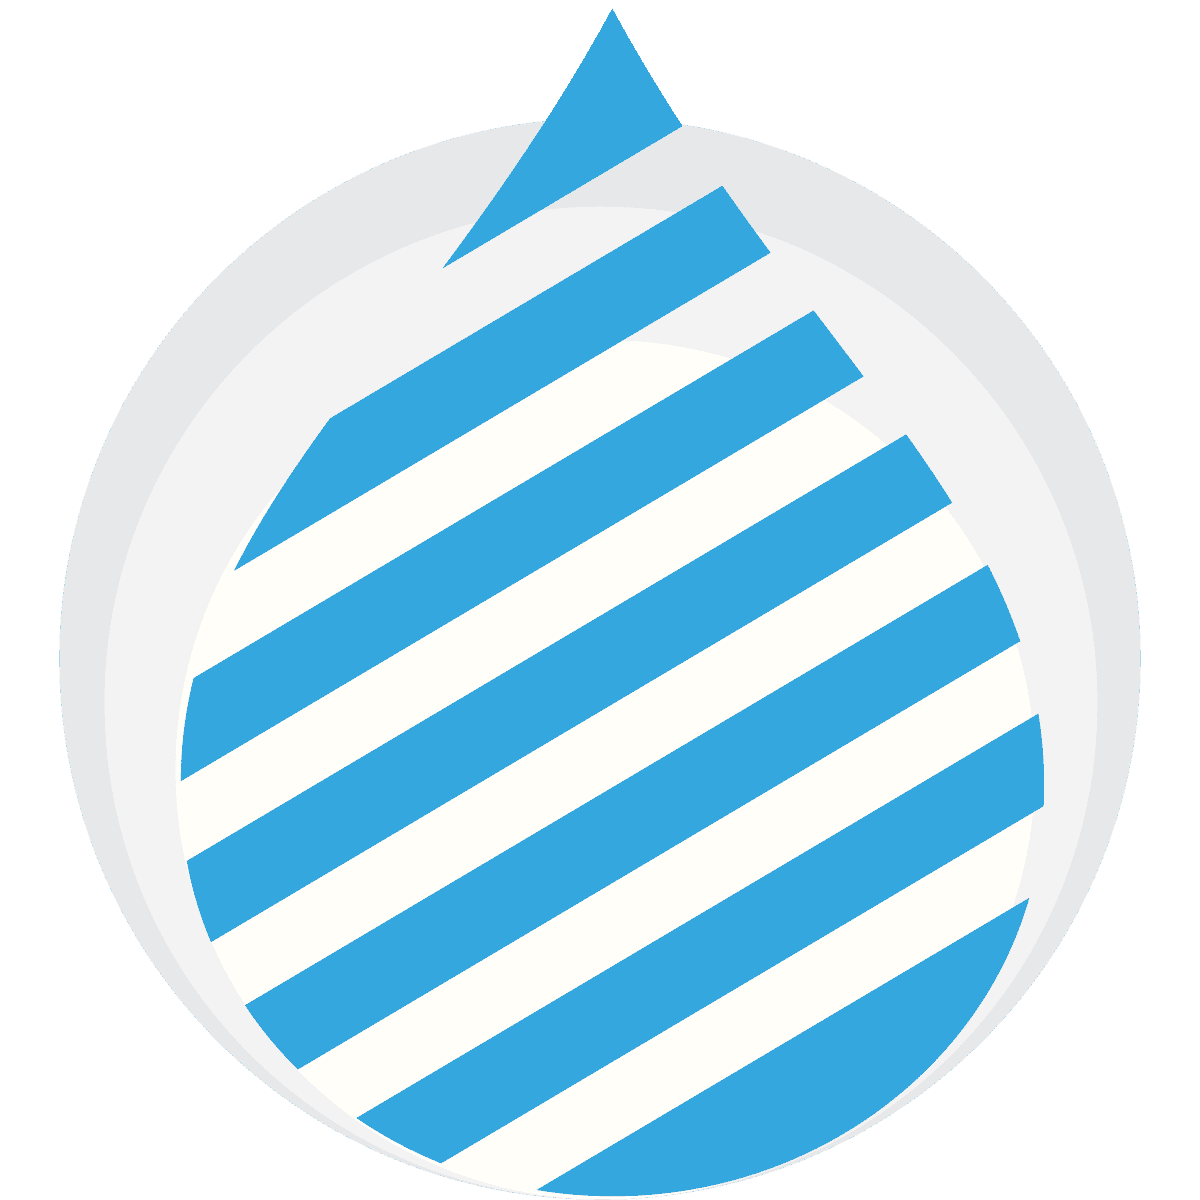 Water category logo.